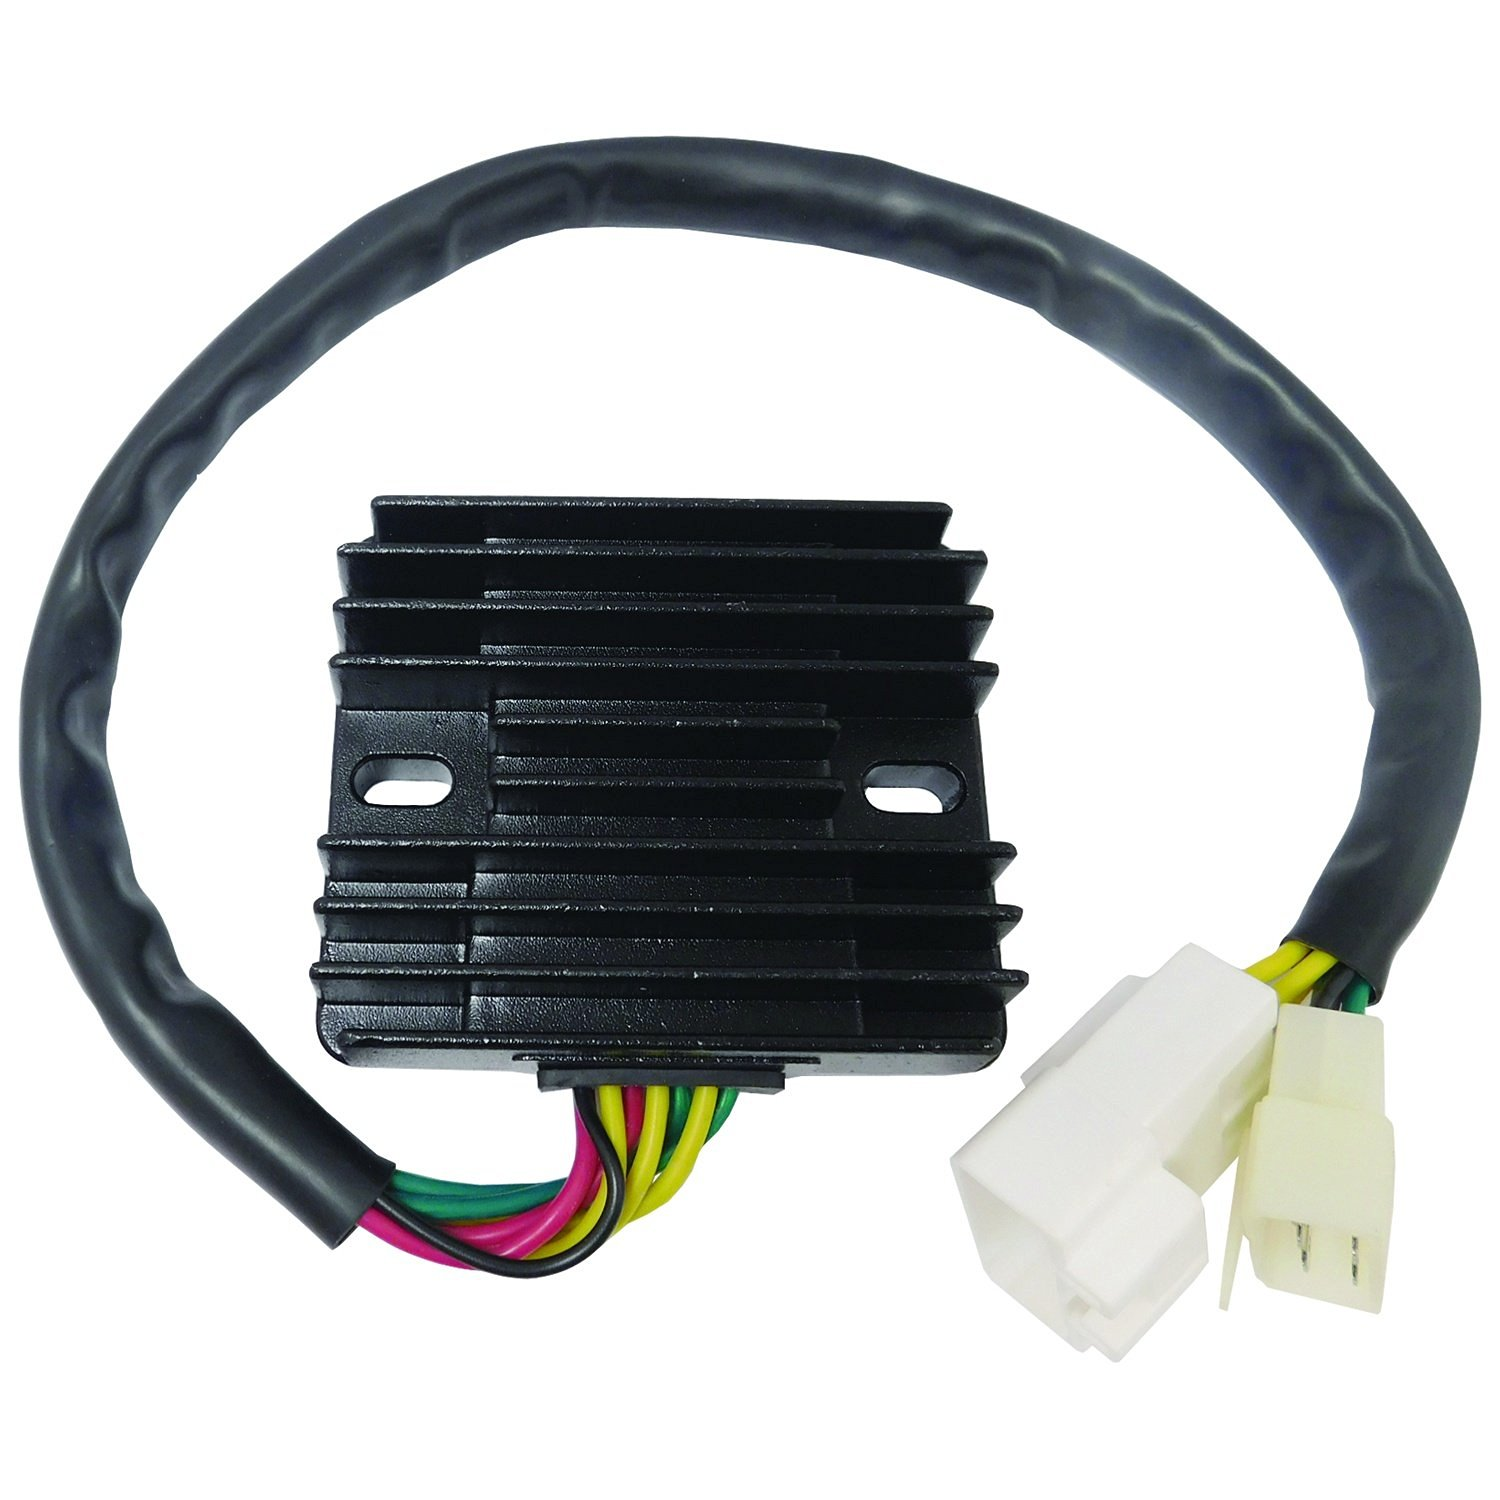 New Voltage Regulator Rectifier For Honda 2002 2003 CBR954RR (CBR900RR) SC50 Replaces 31600-MCJ-750, SH678DA, SH678D